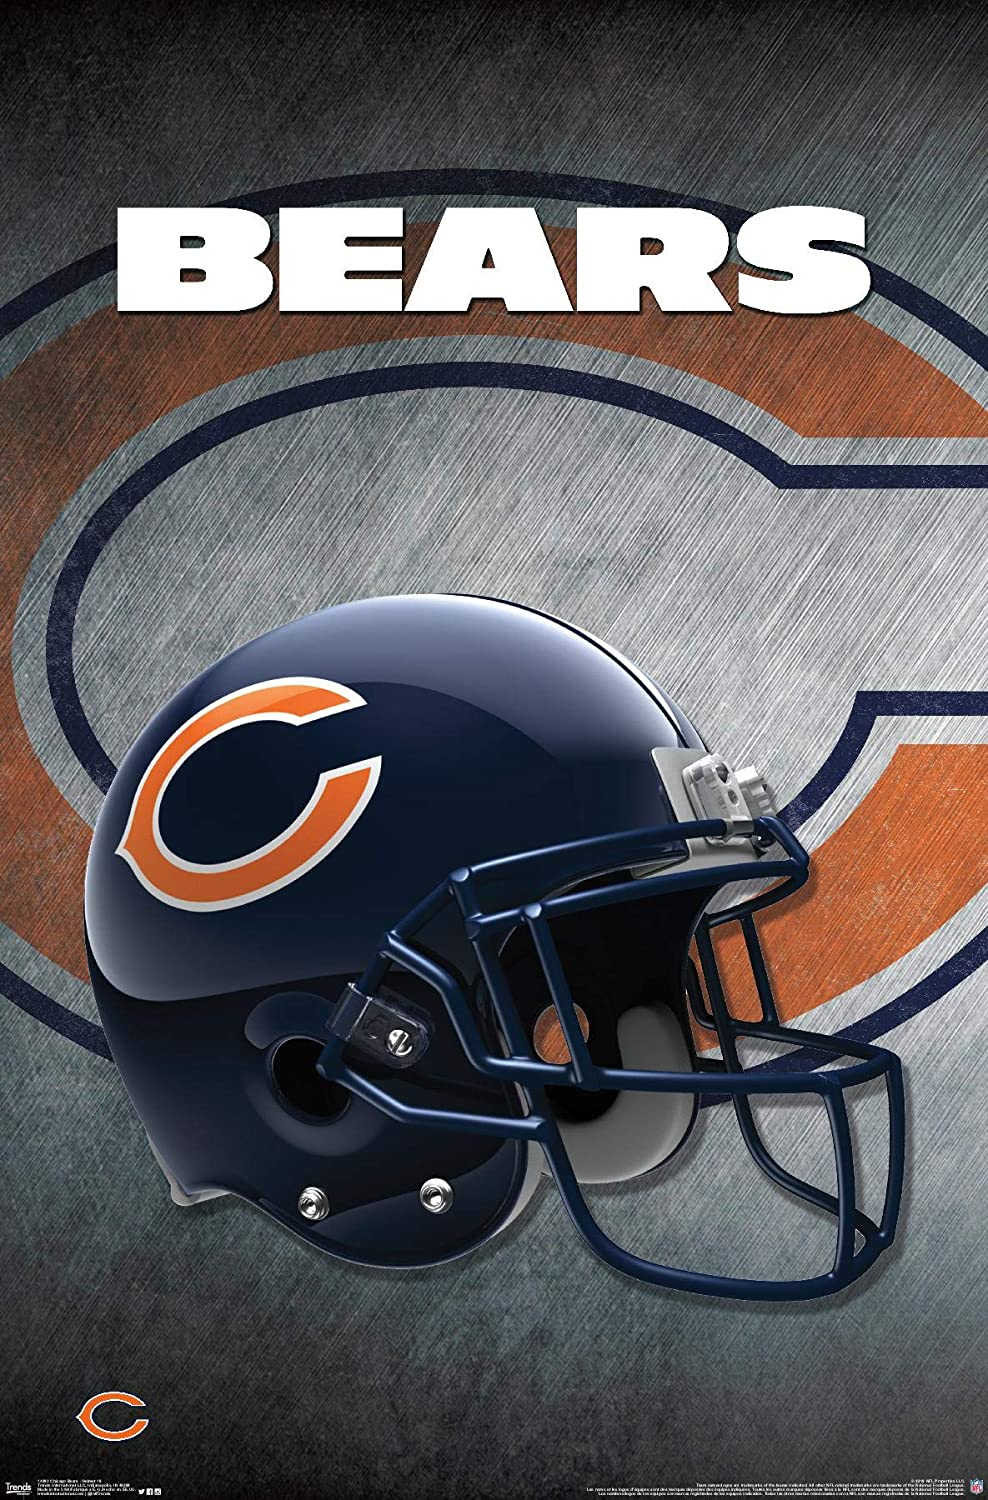 "Trends International Chicago Bears Helmet Wall Poster 22.375"" x 34"""